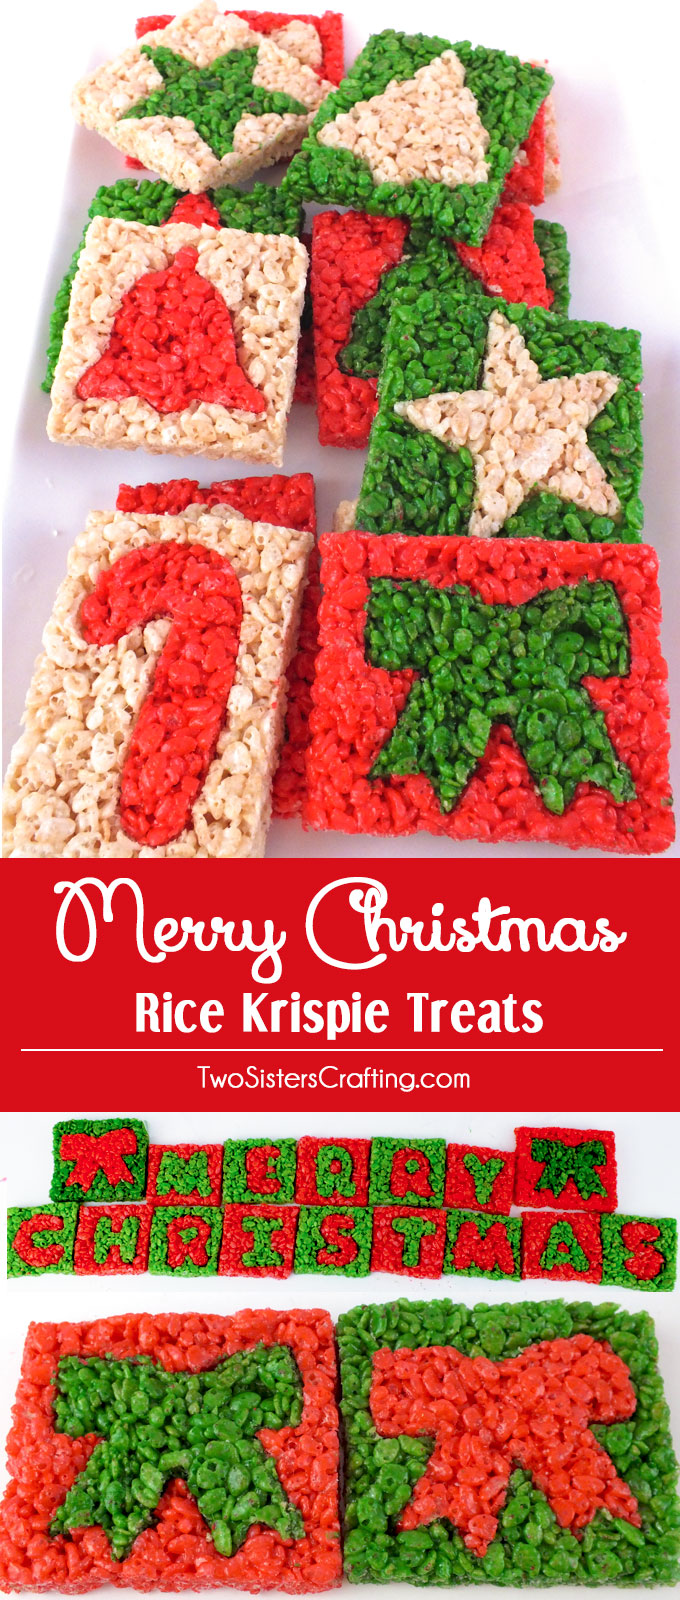 Christmas Colored Rice Krispie Treats With Merry Two Sisters